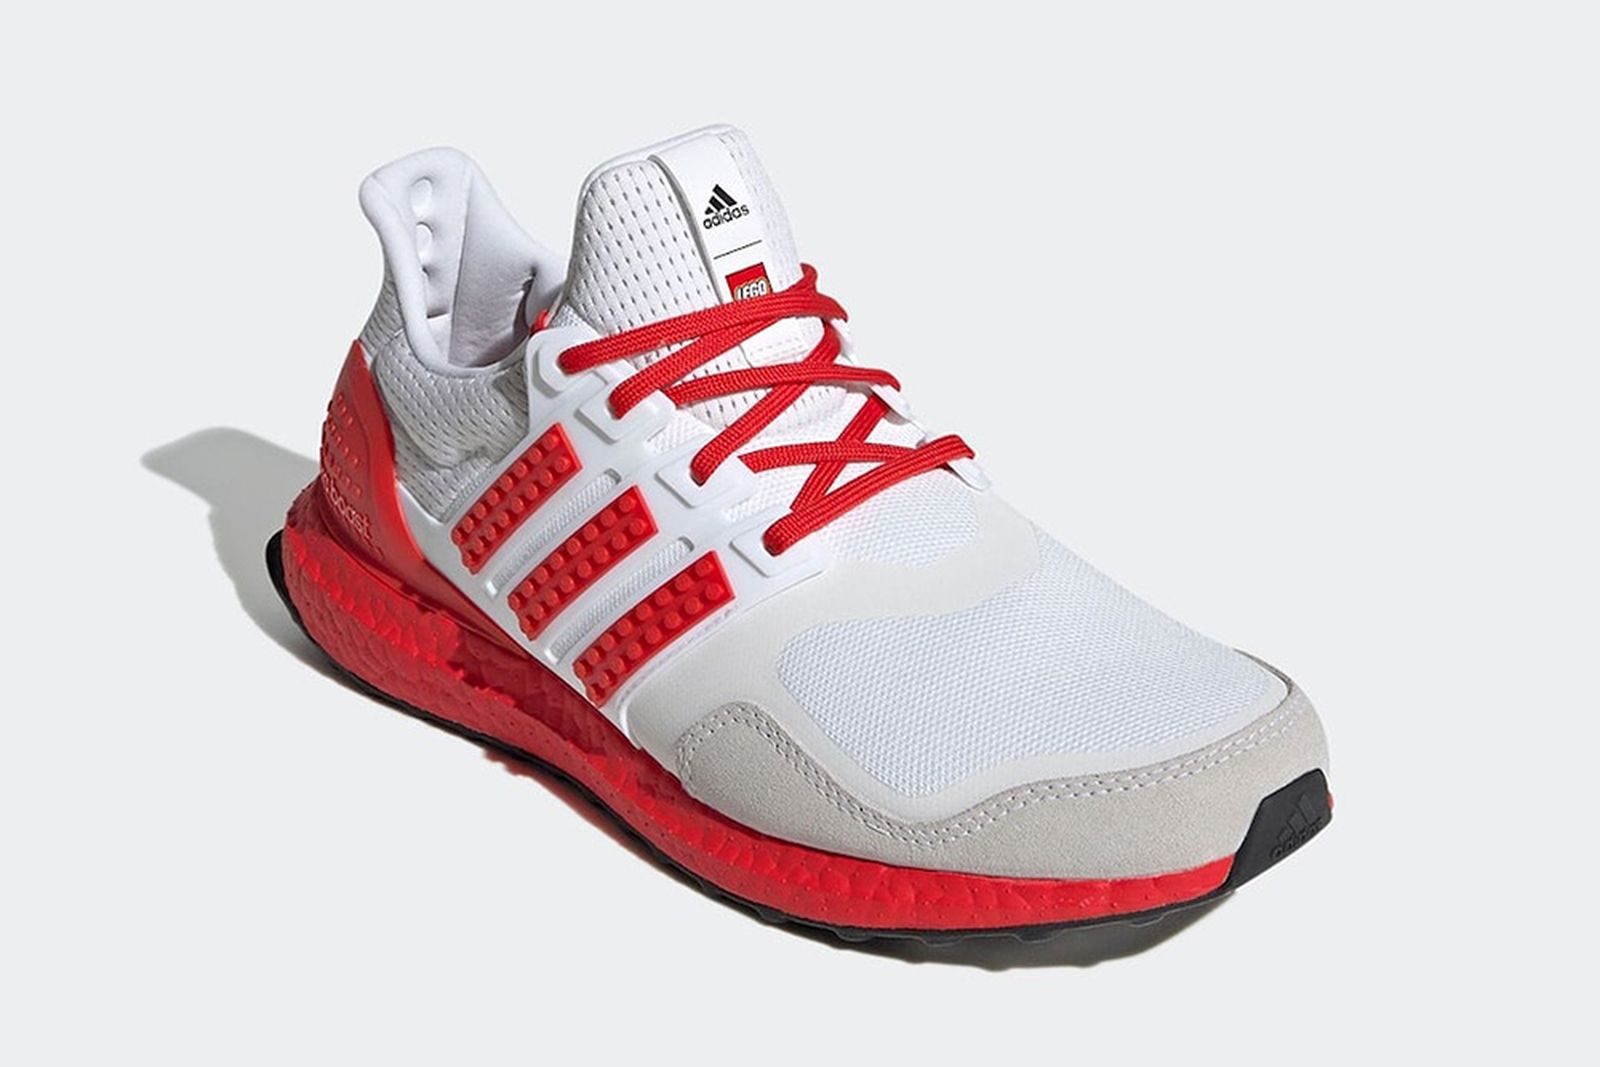 lego-adidas-ultraboost-color-pack-release-date-price-10